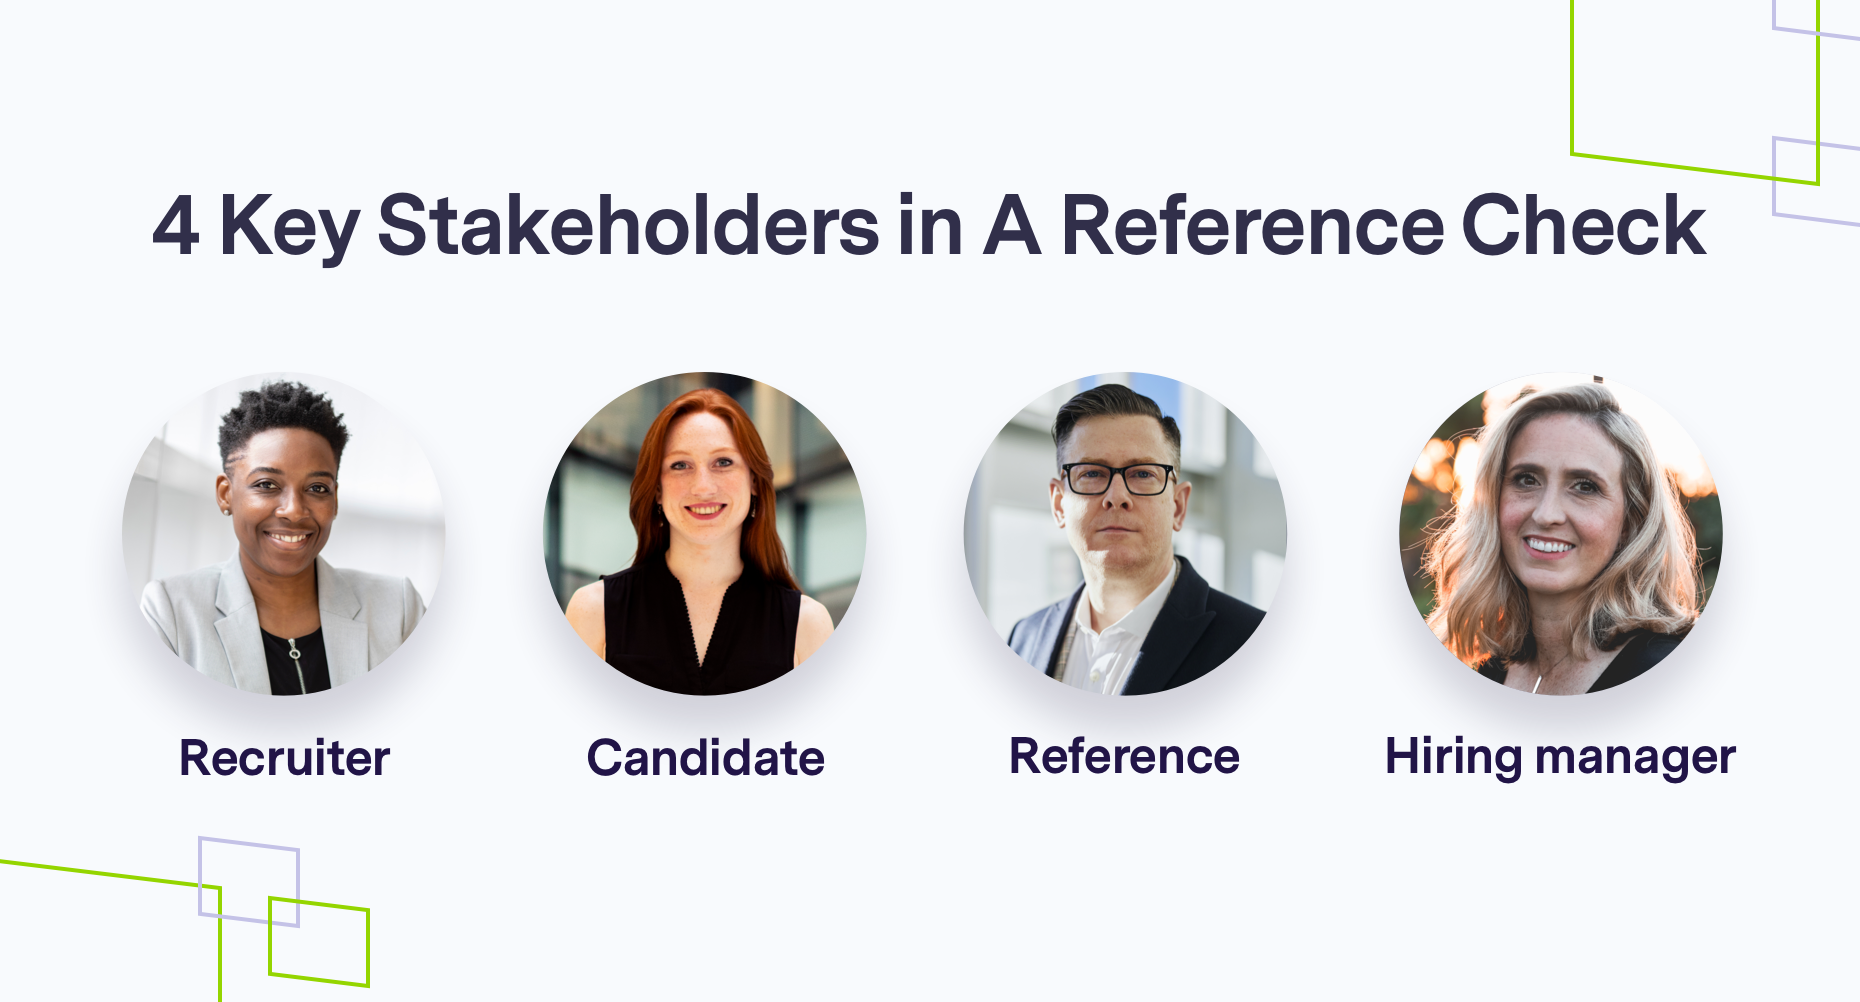 There are 4 stakeholders involved in a reference check